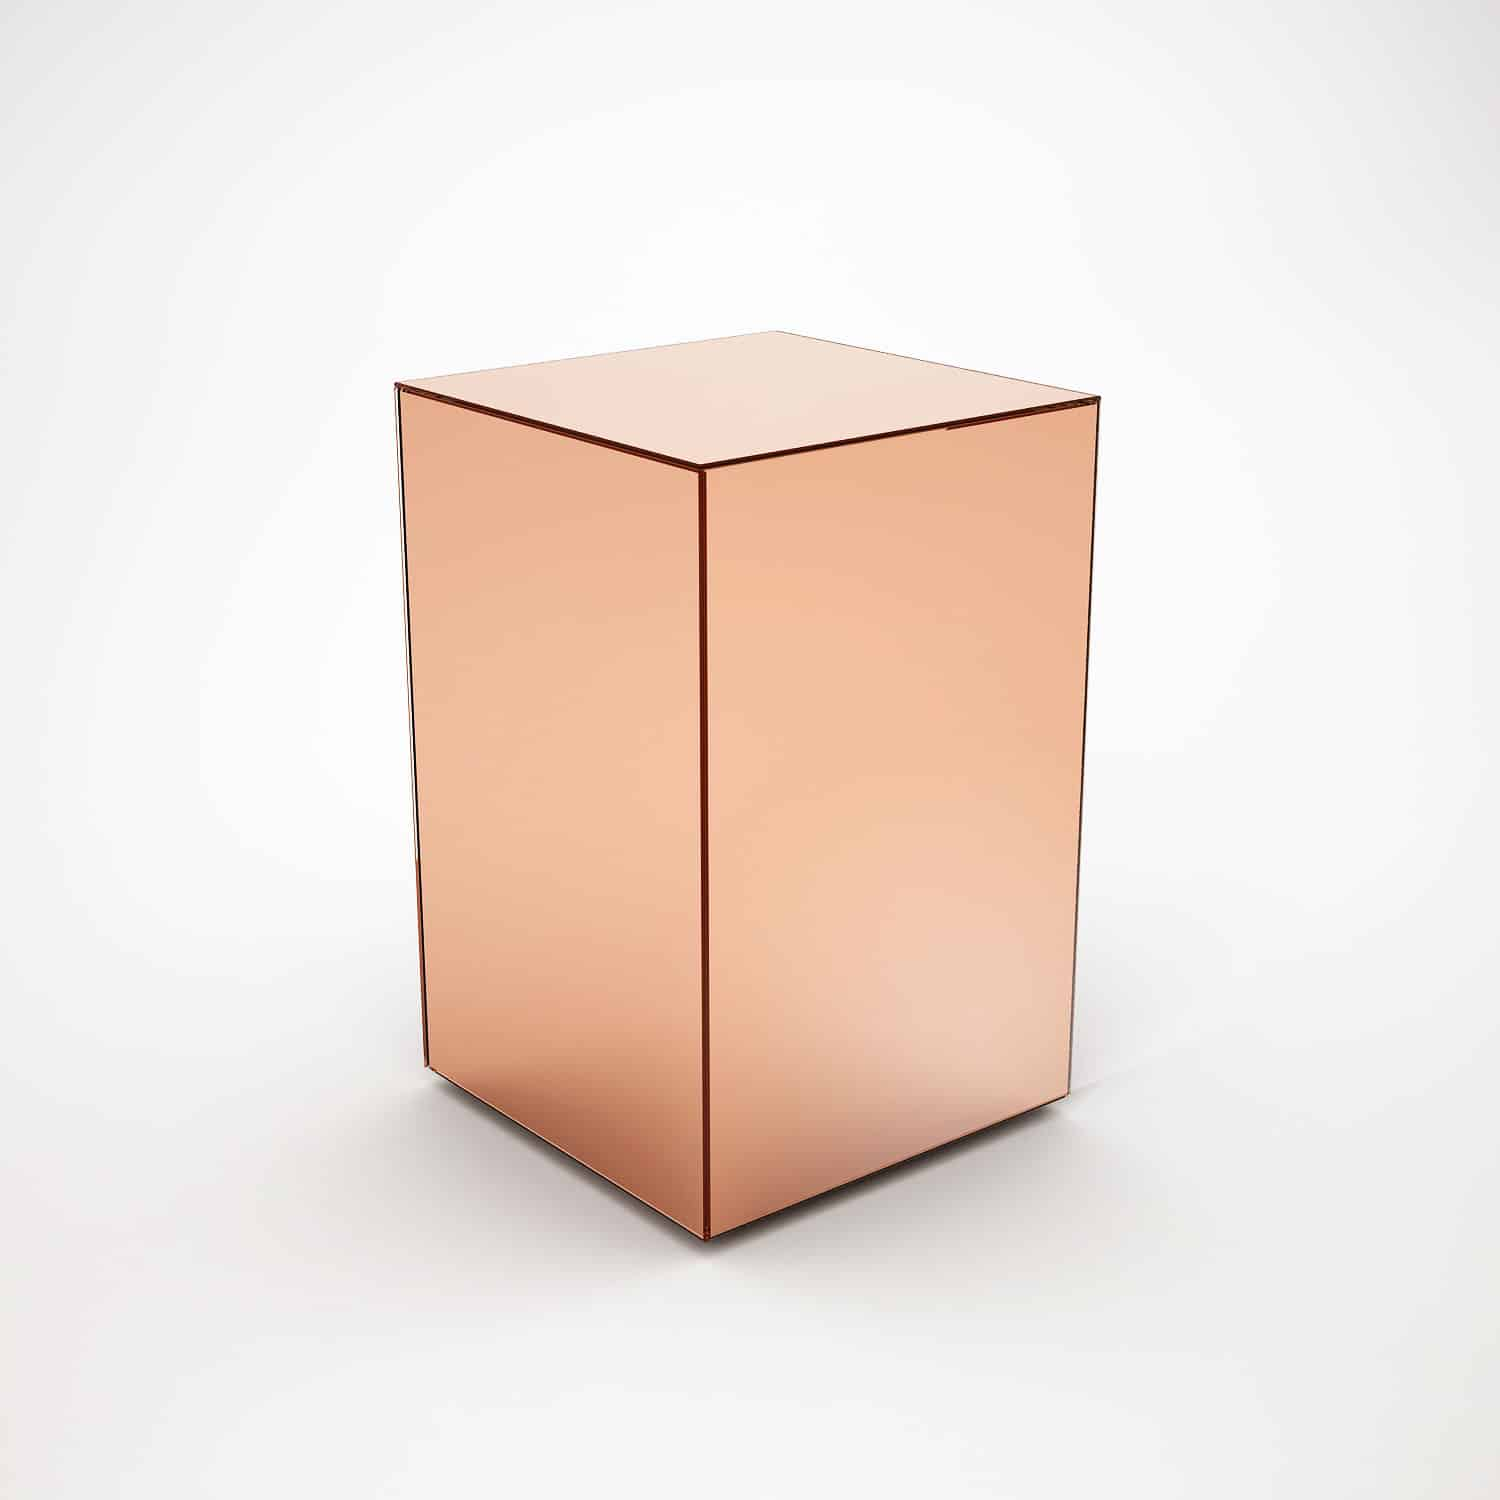 Copper mirrored side table by mirrorbox klarity glass furniture Mirror glass furniture